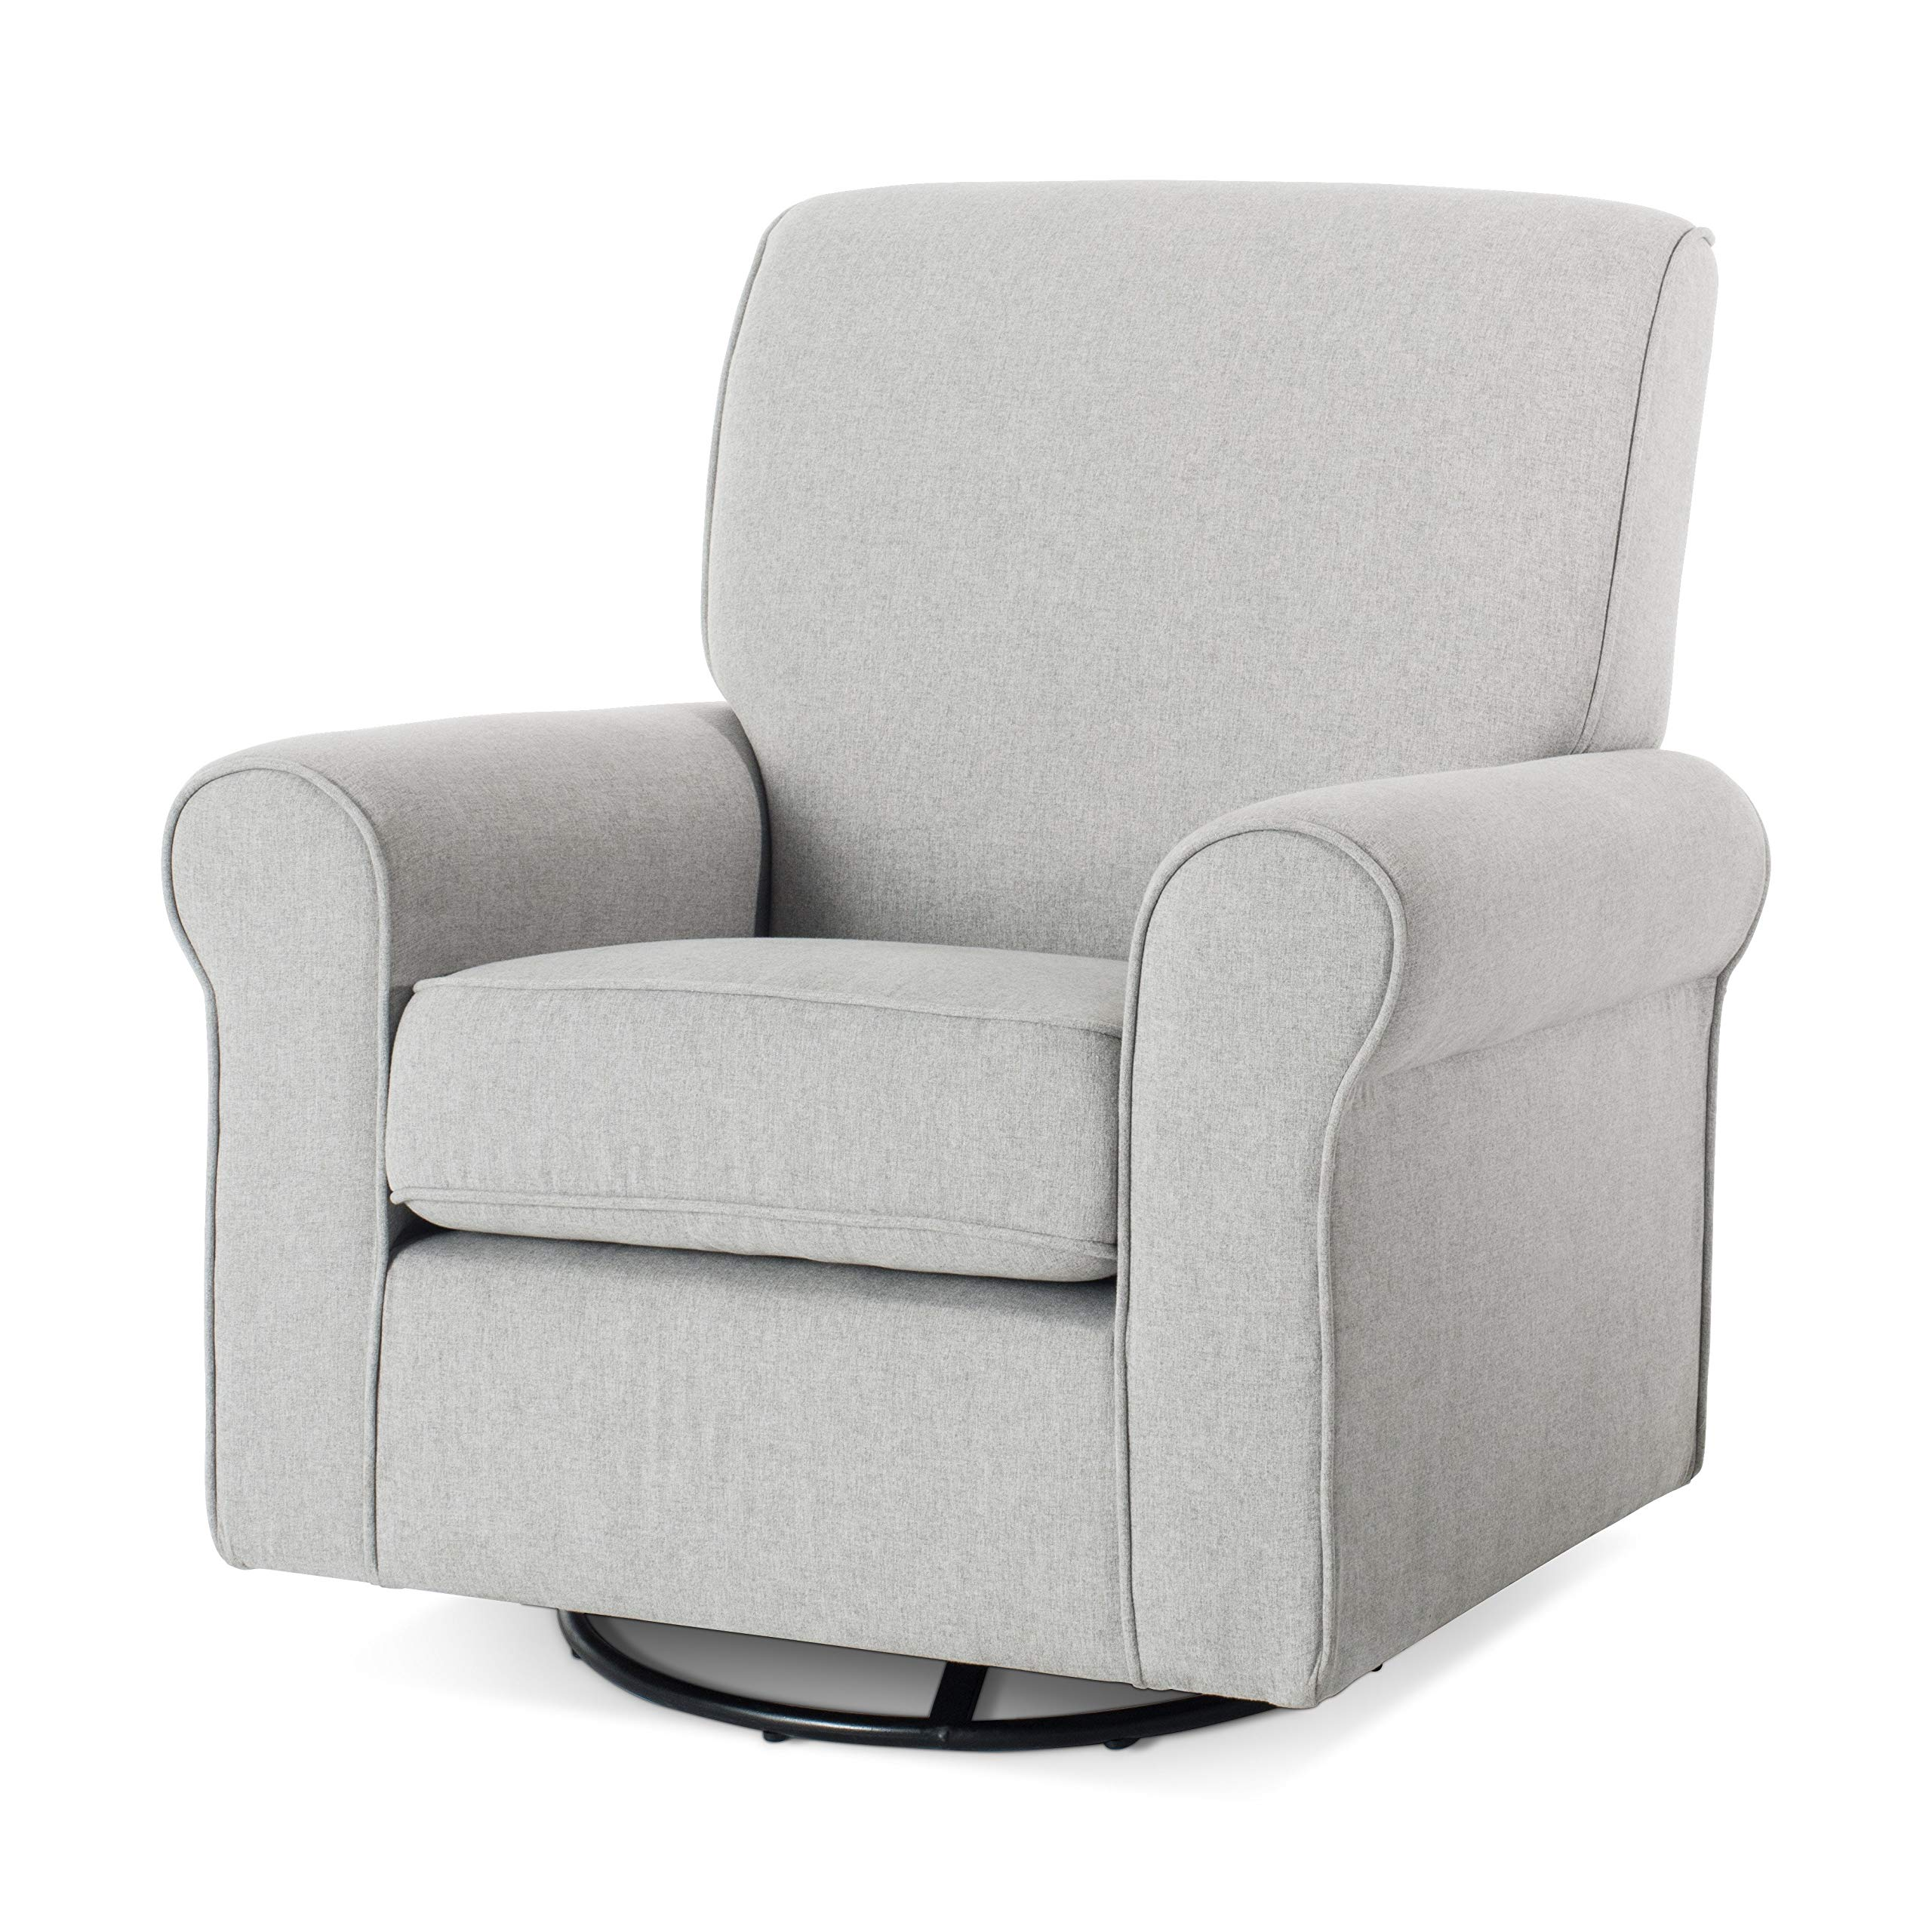 Forever Eclectic by Child Craft Serene Upholstered Swivel Glider Rocker, Flecked Gray (Flecked Gray) by Childcraft